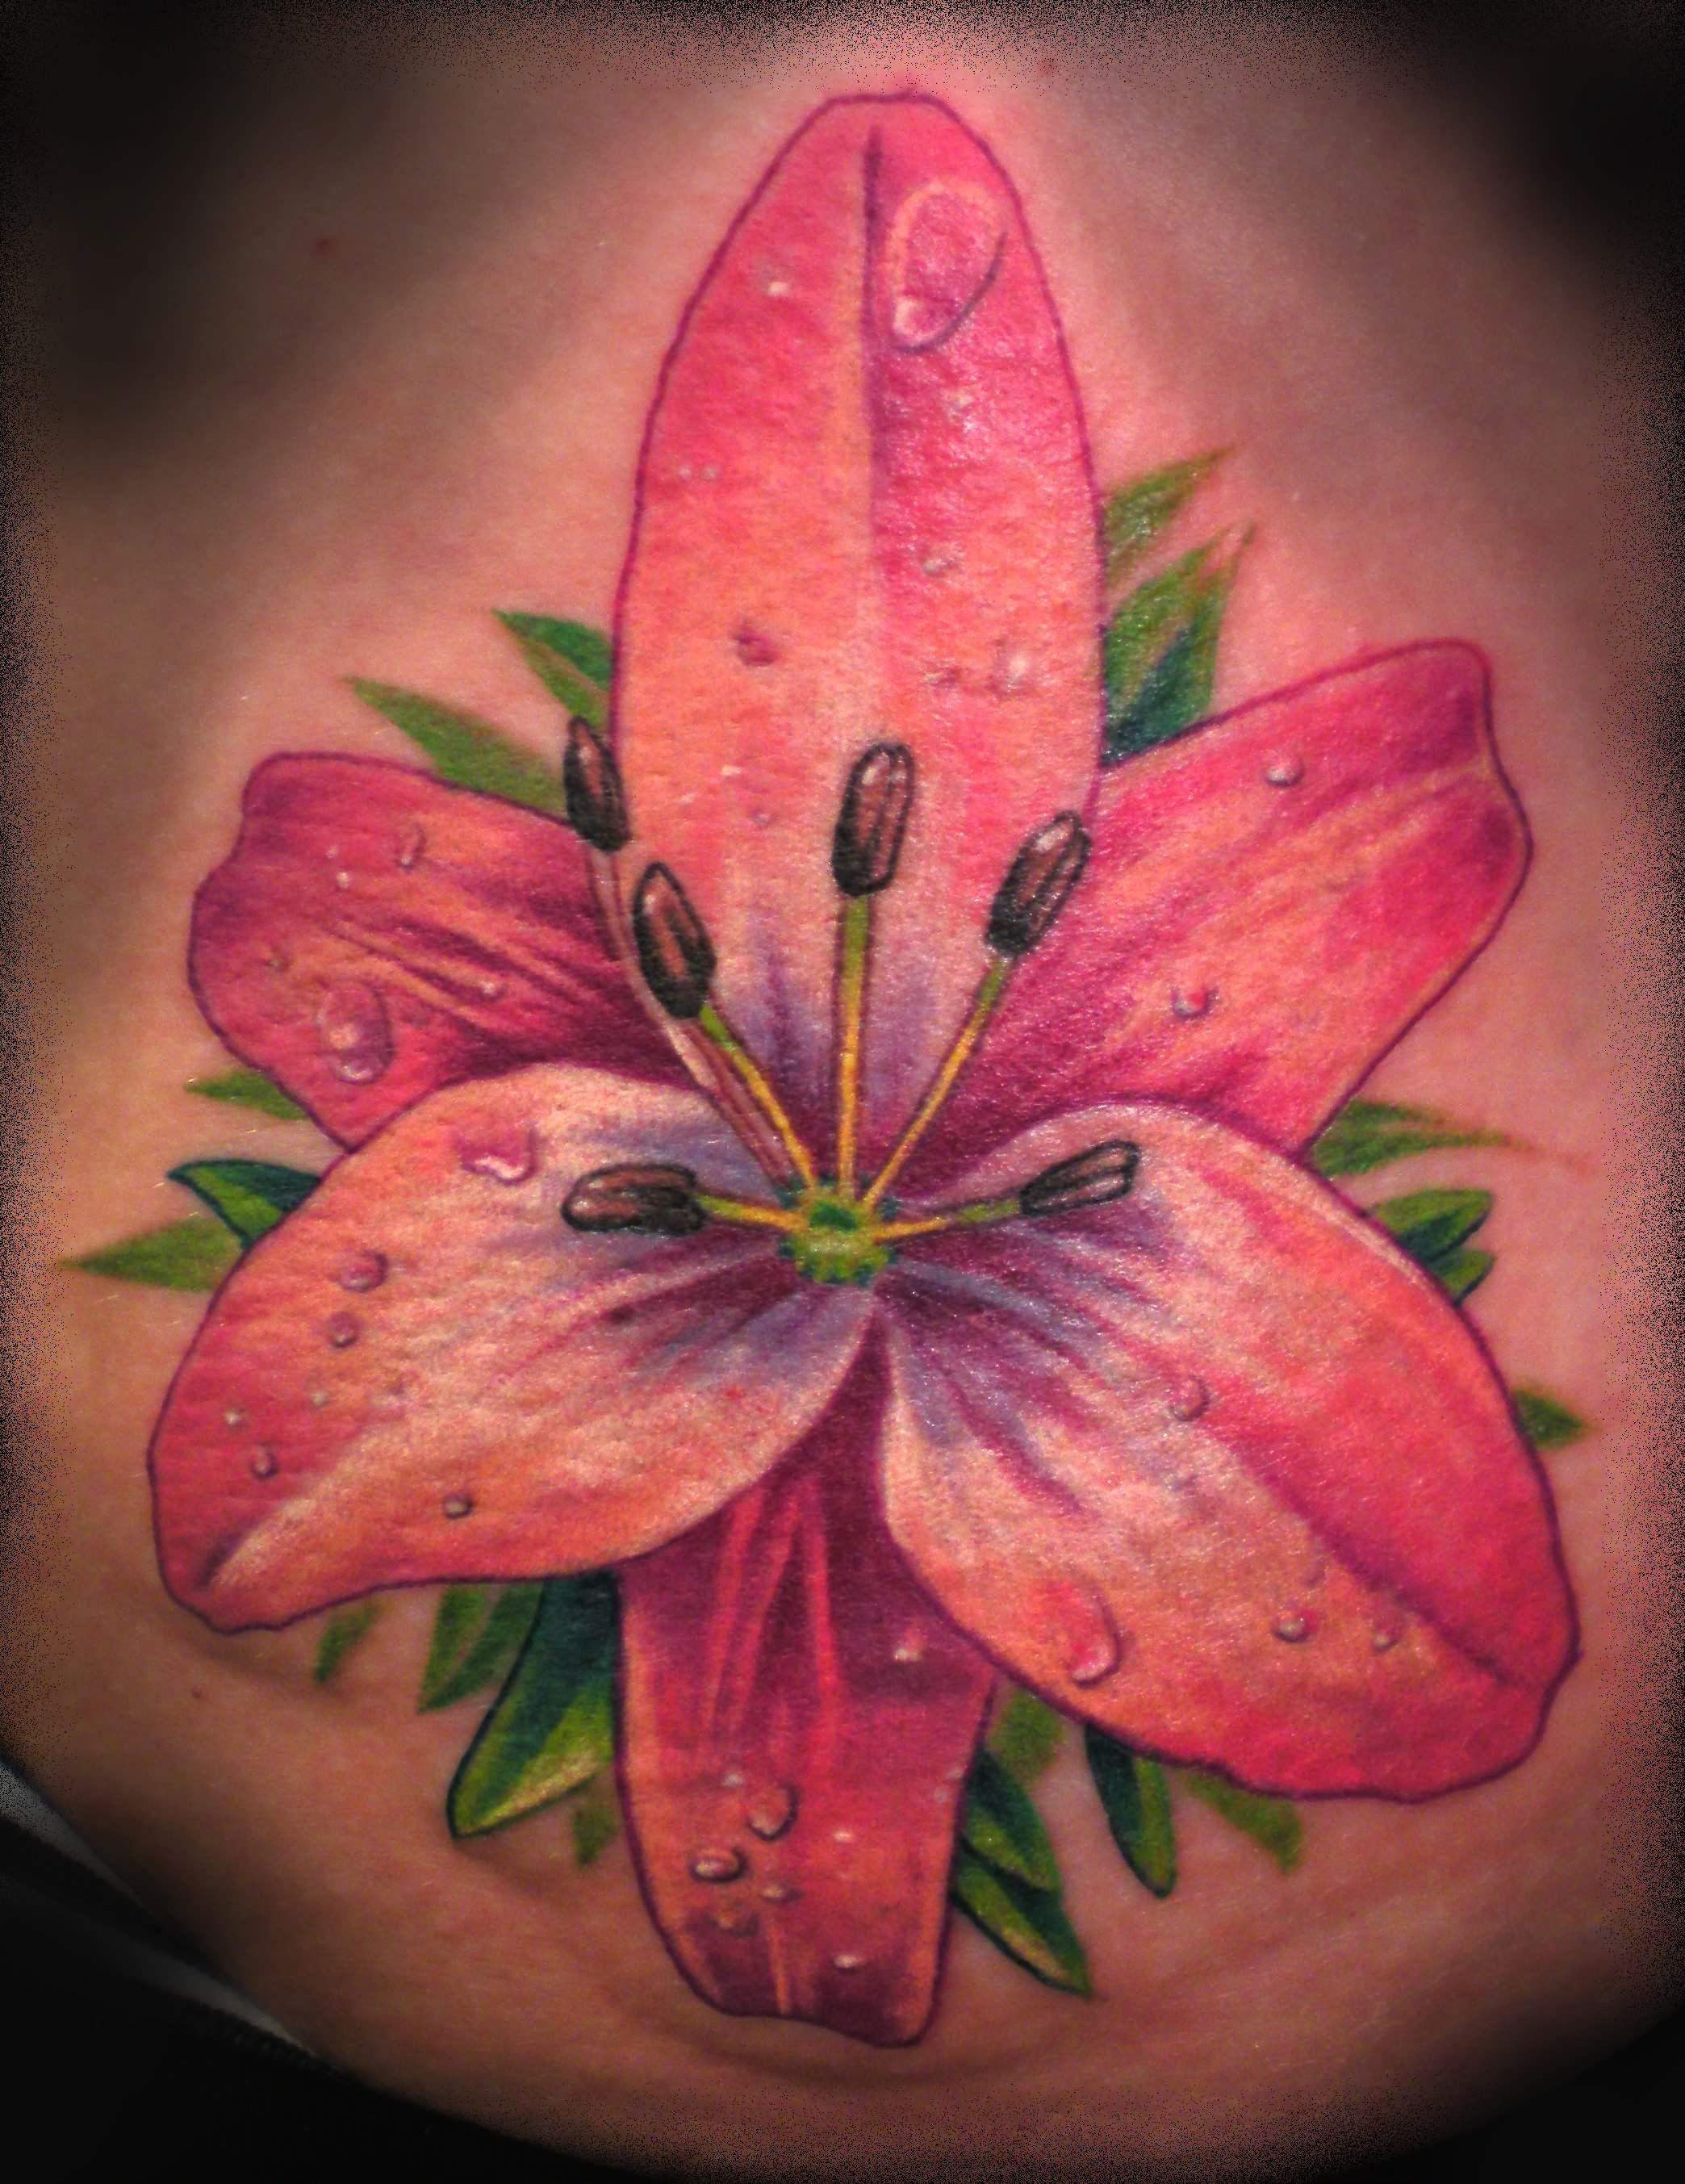 Flowertattoos body tattoos pictures 30 beauteous tattoo lilly flowertattoos body tattoos pictures 30 beauteous tattoo lilly flower izmirmasajfo Choice Image